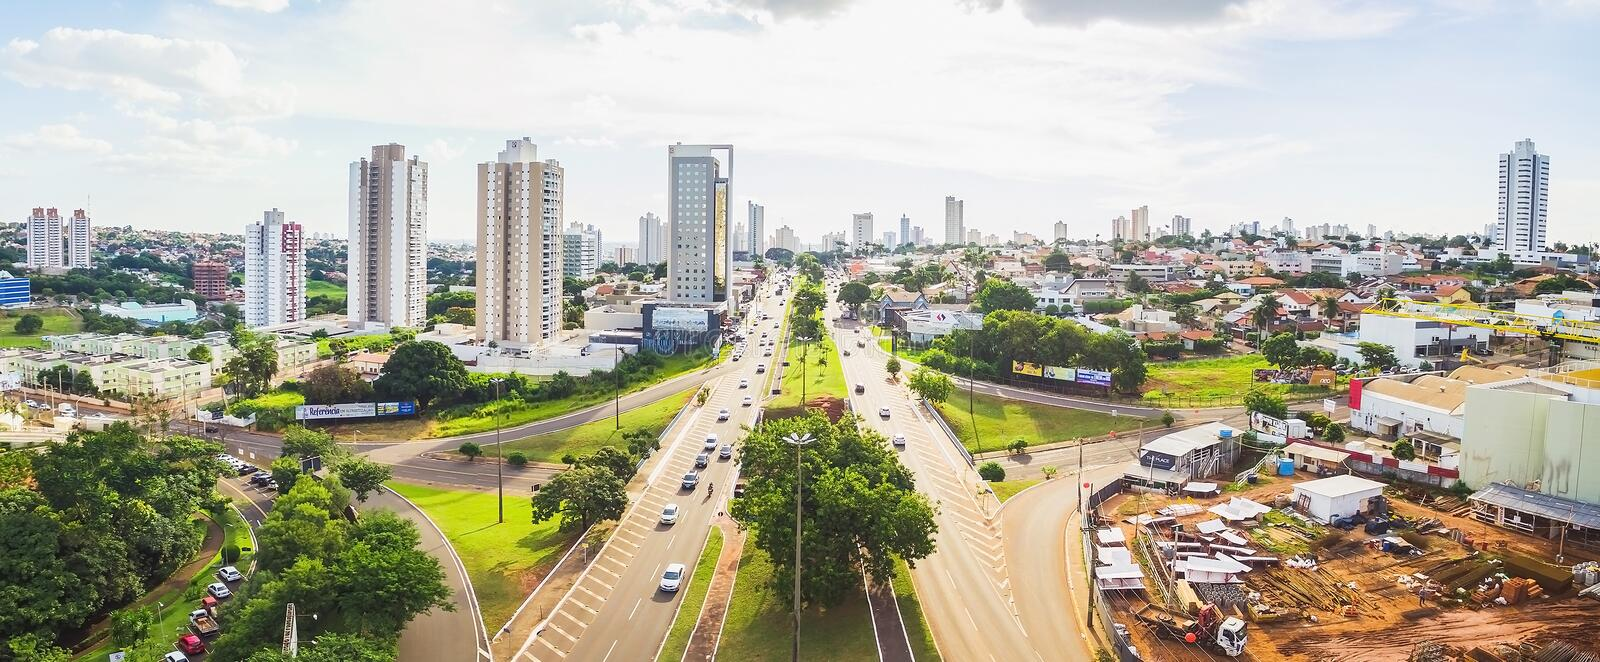 Aerial Afonso Pena avenue view royalty free stock photography